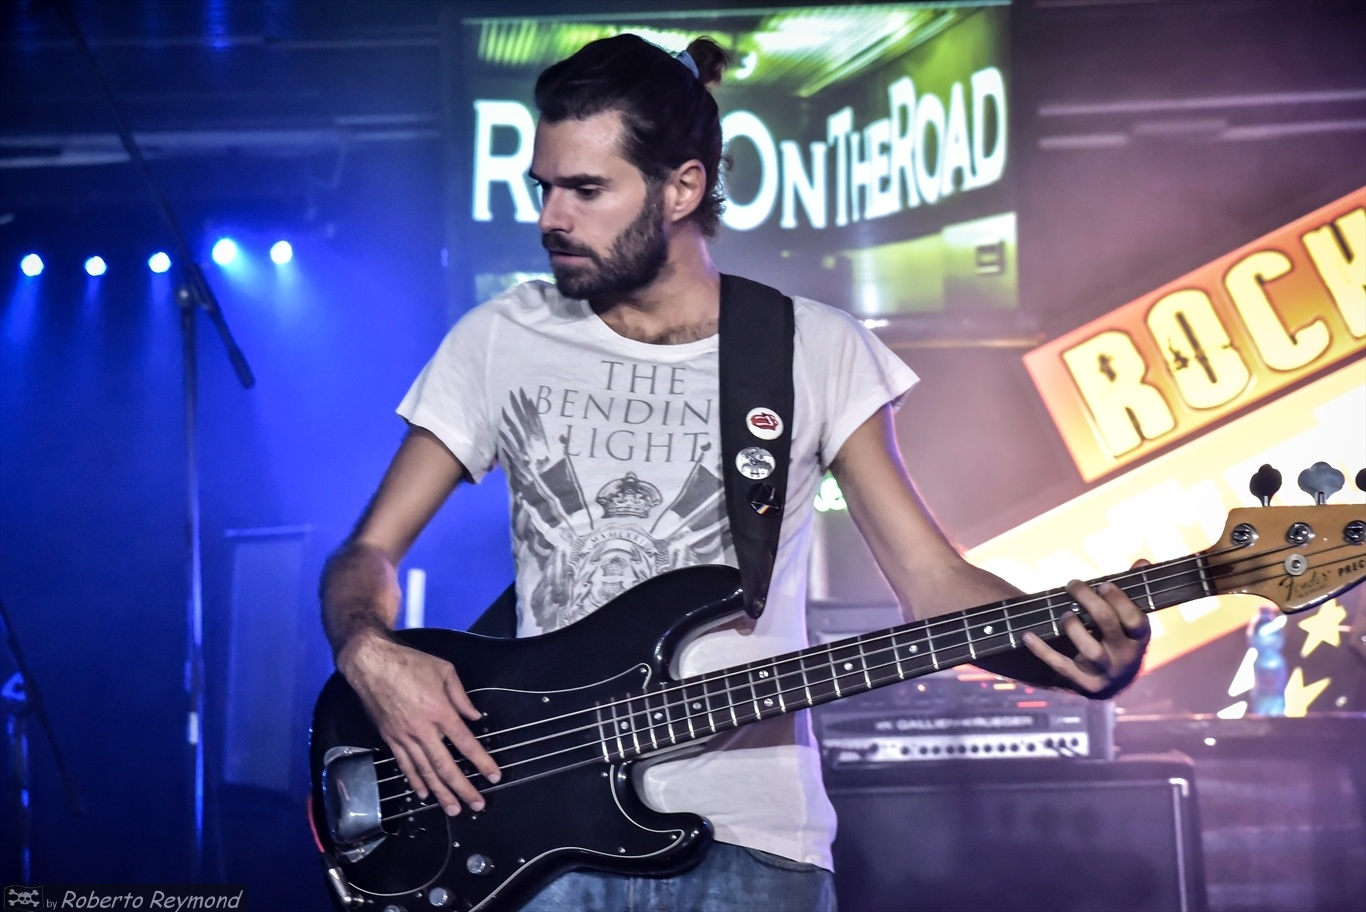 ALTERED at Rock on the Road 09 by Roberto Reymond